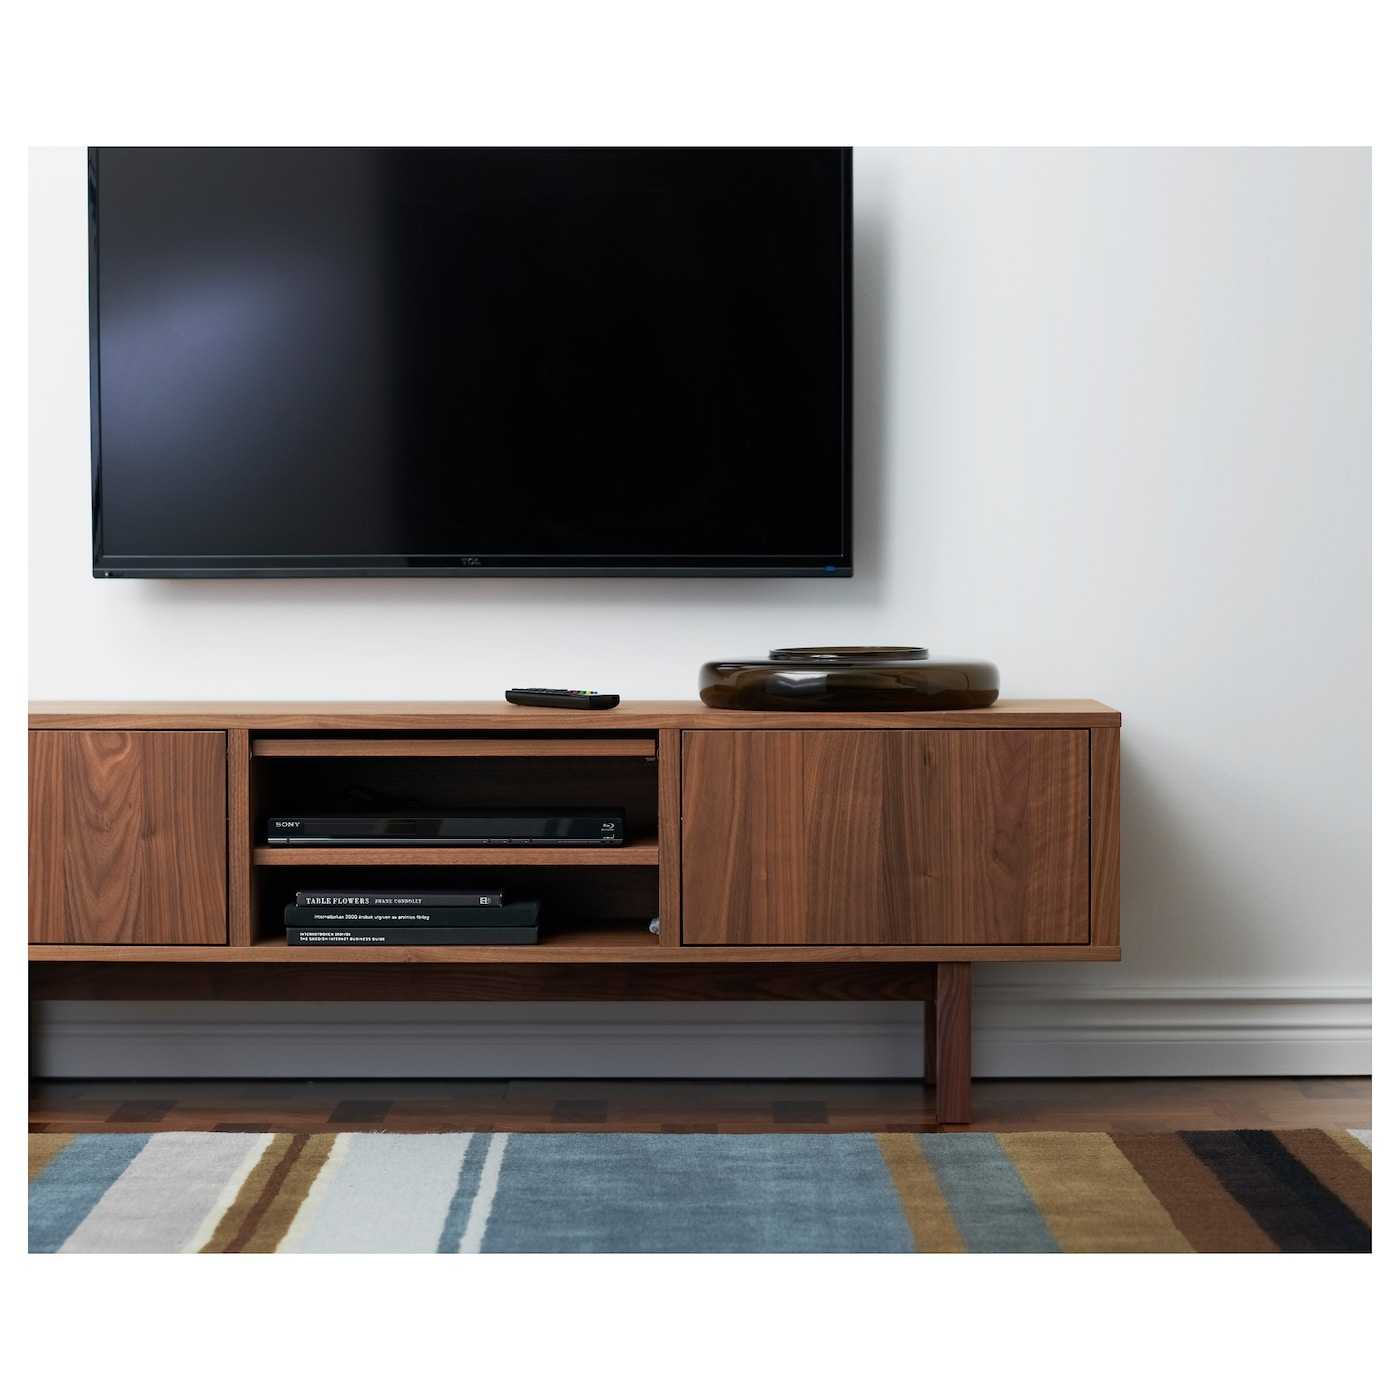 Image result for tv ikea